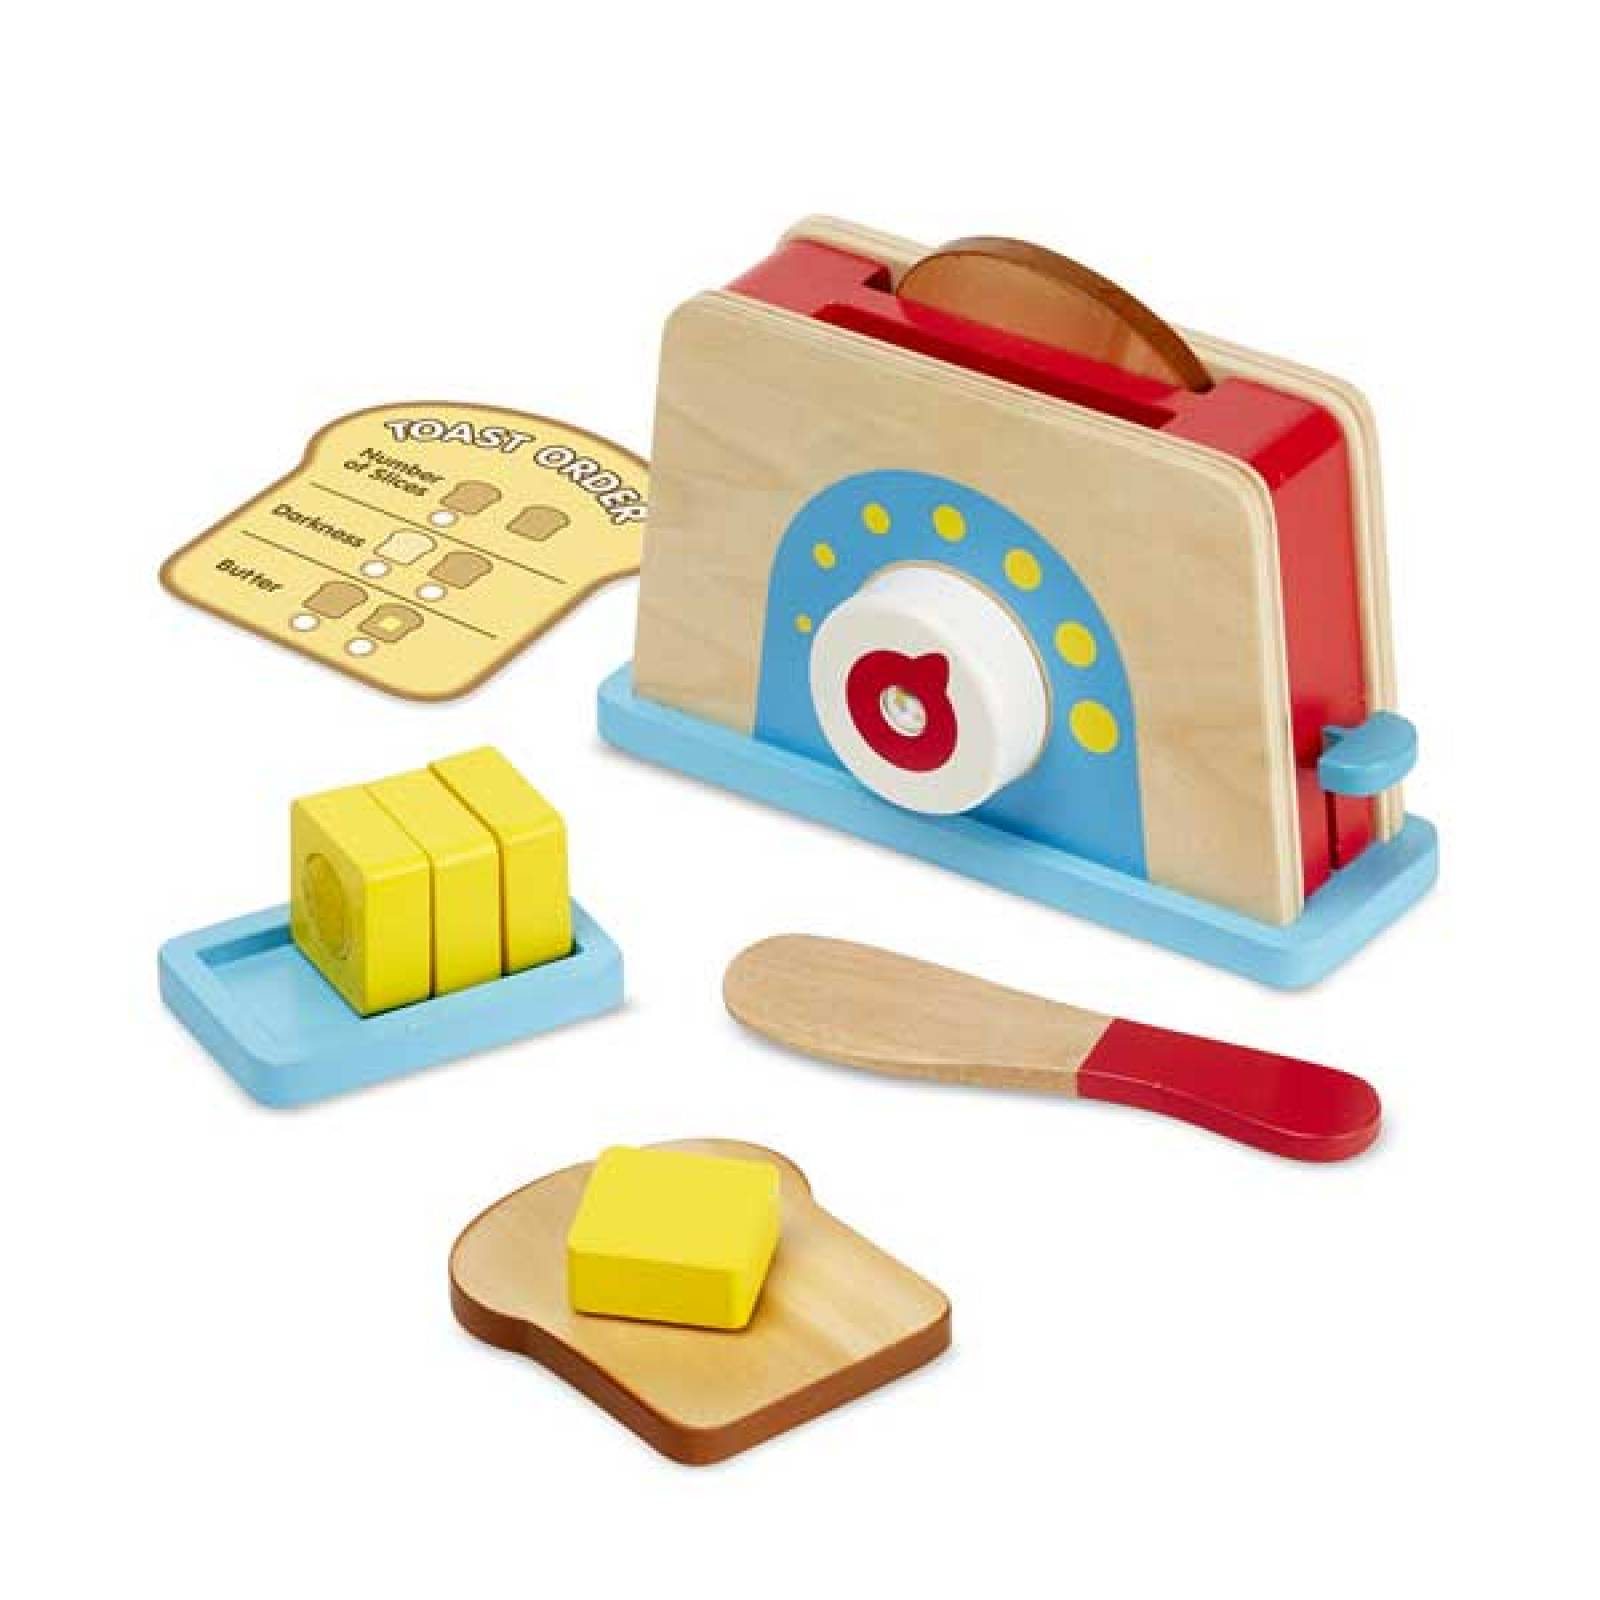 Wooden Bread And Butter Toast Set Melissa & Doug 3+ thumbnails